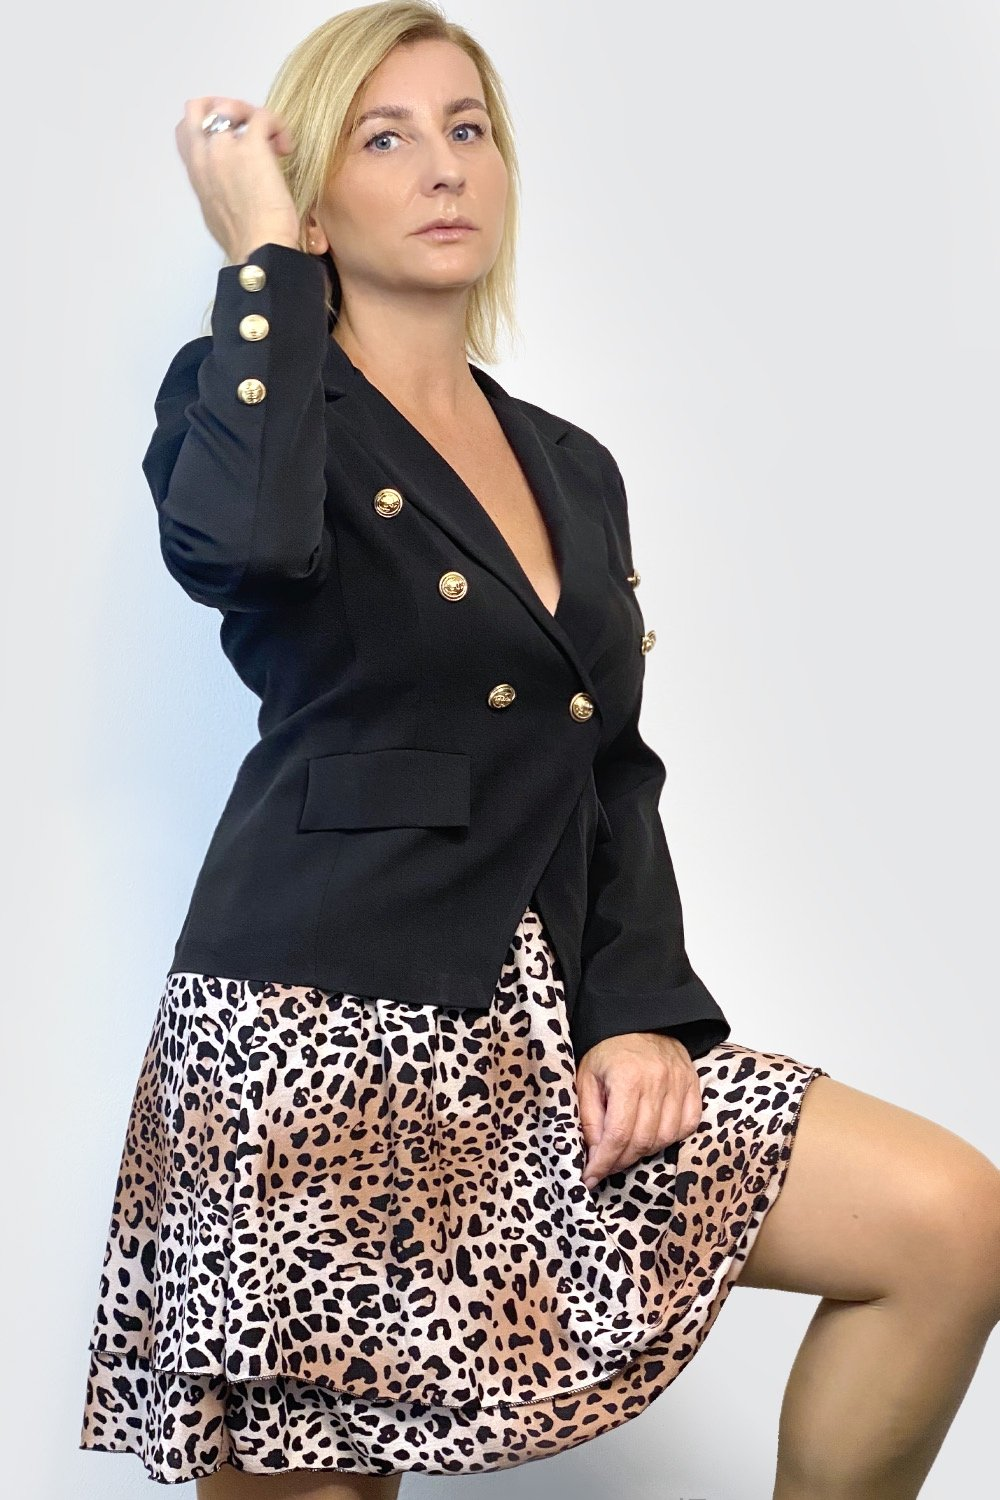 Blazer Ally - The Fashionboutique - Colloseum